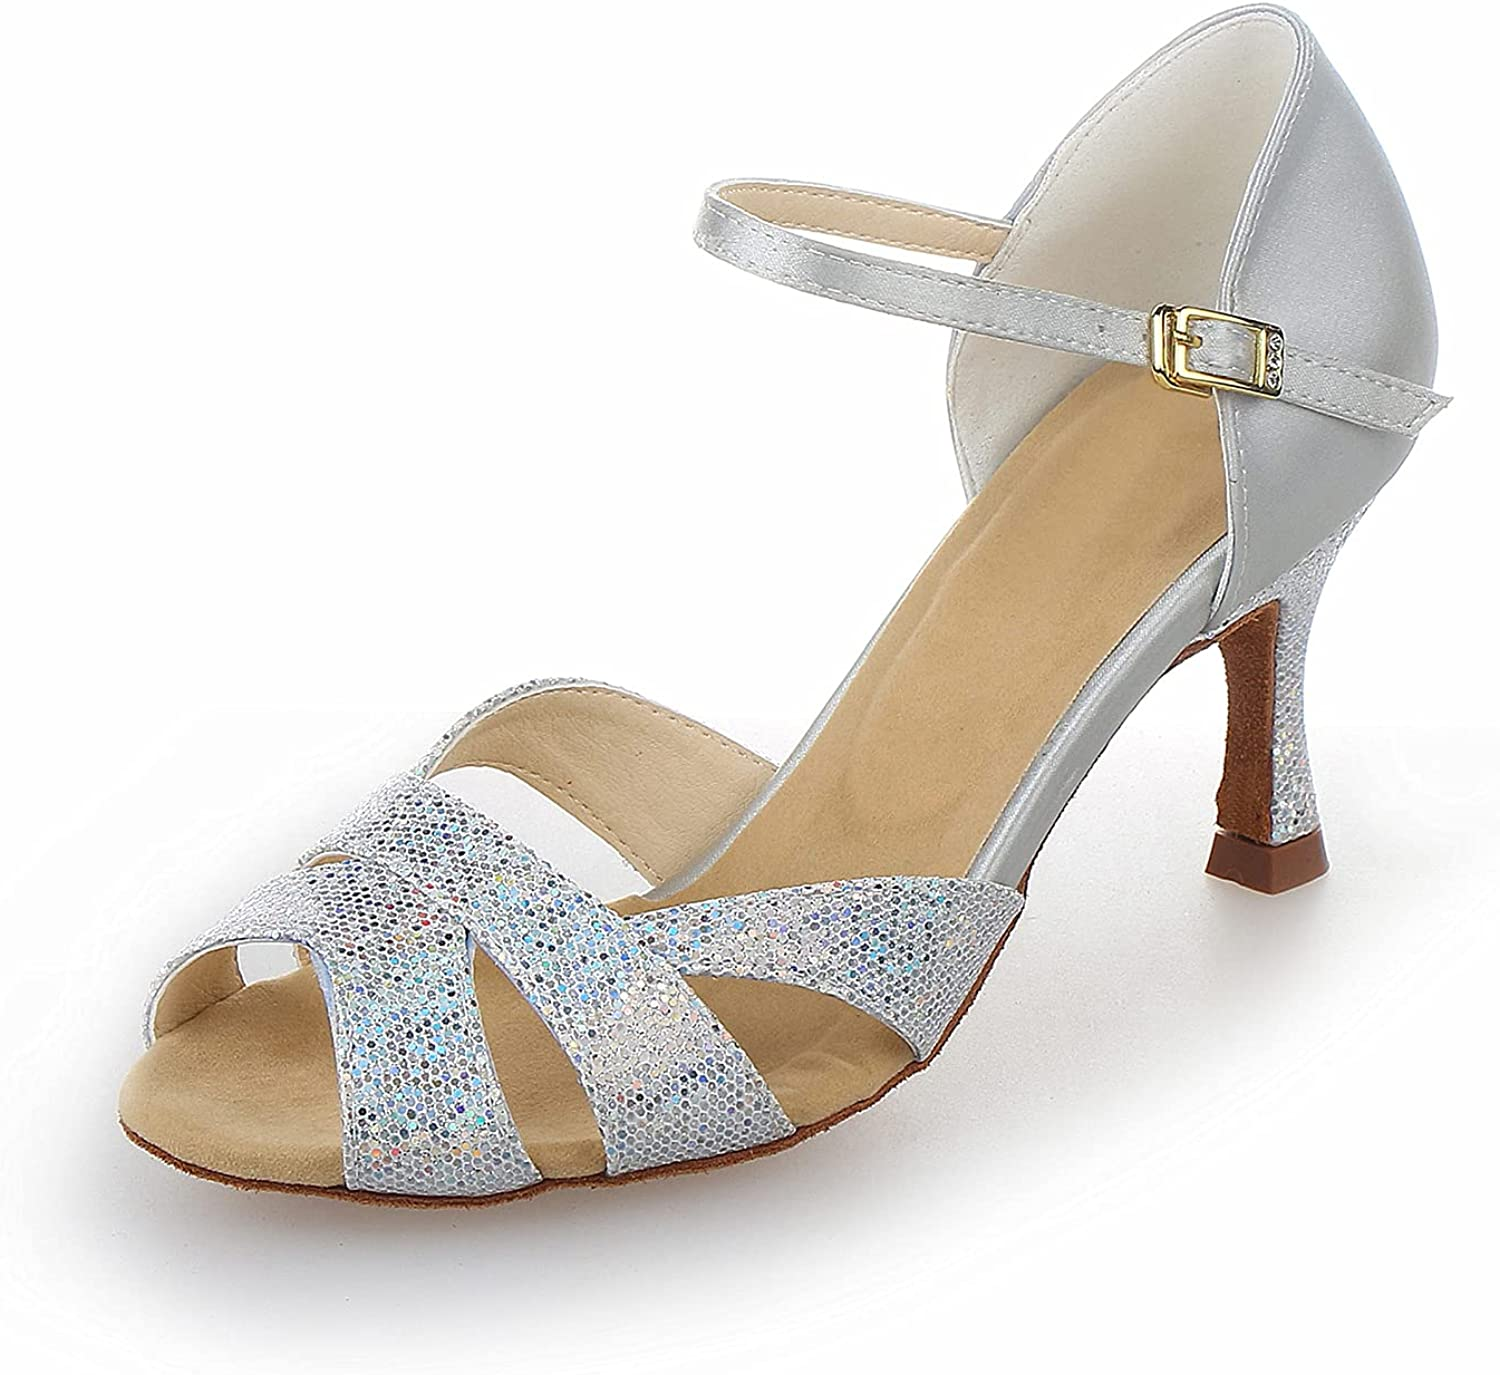 JIAJIA Y2054 Women's Satin Sandals Low price Perfo Latin Salsa In a popularity Flared Heel